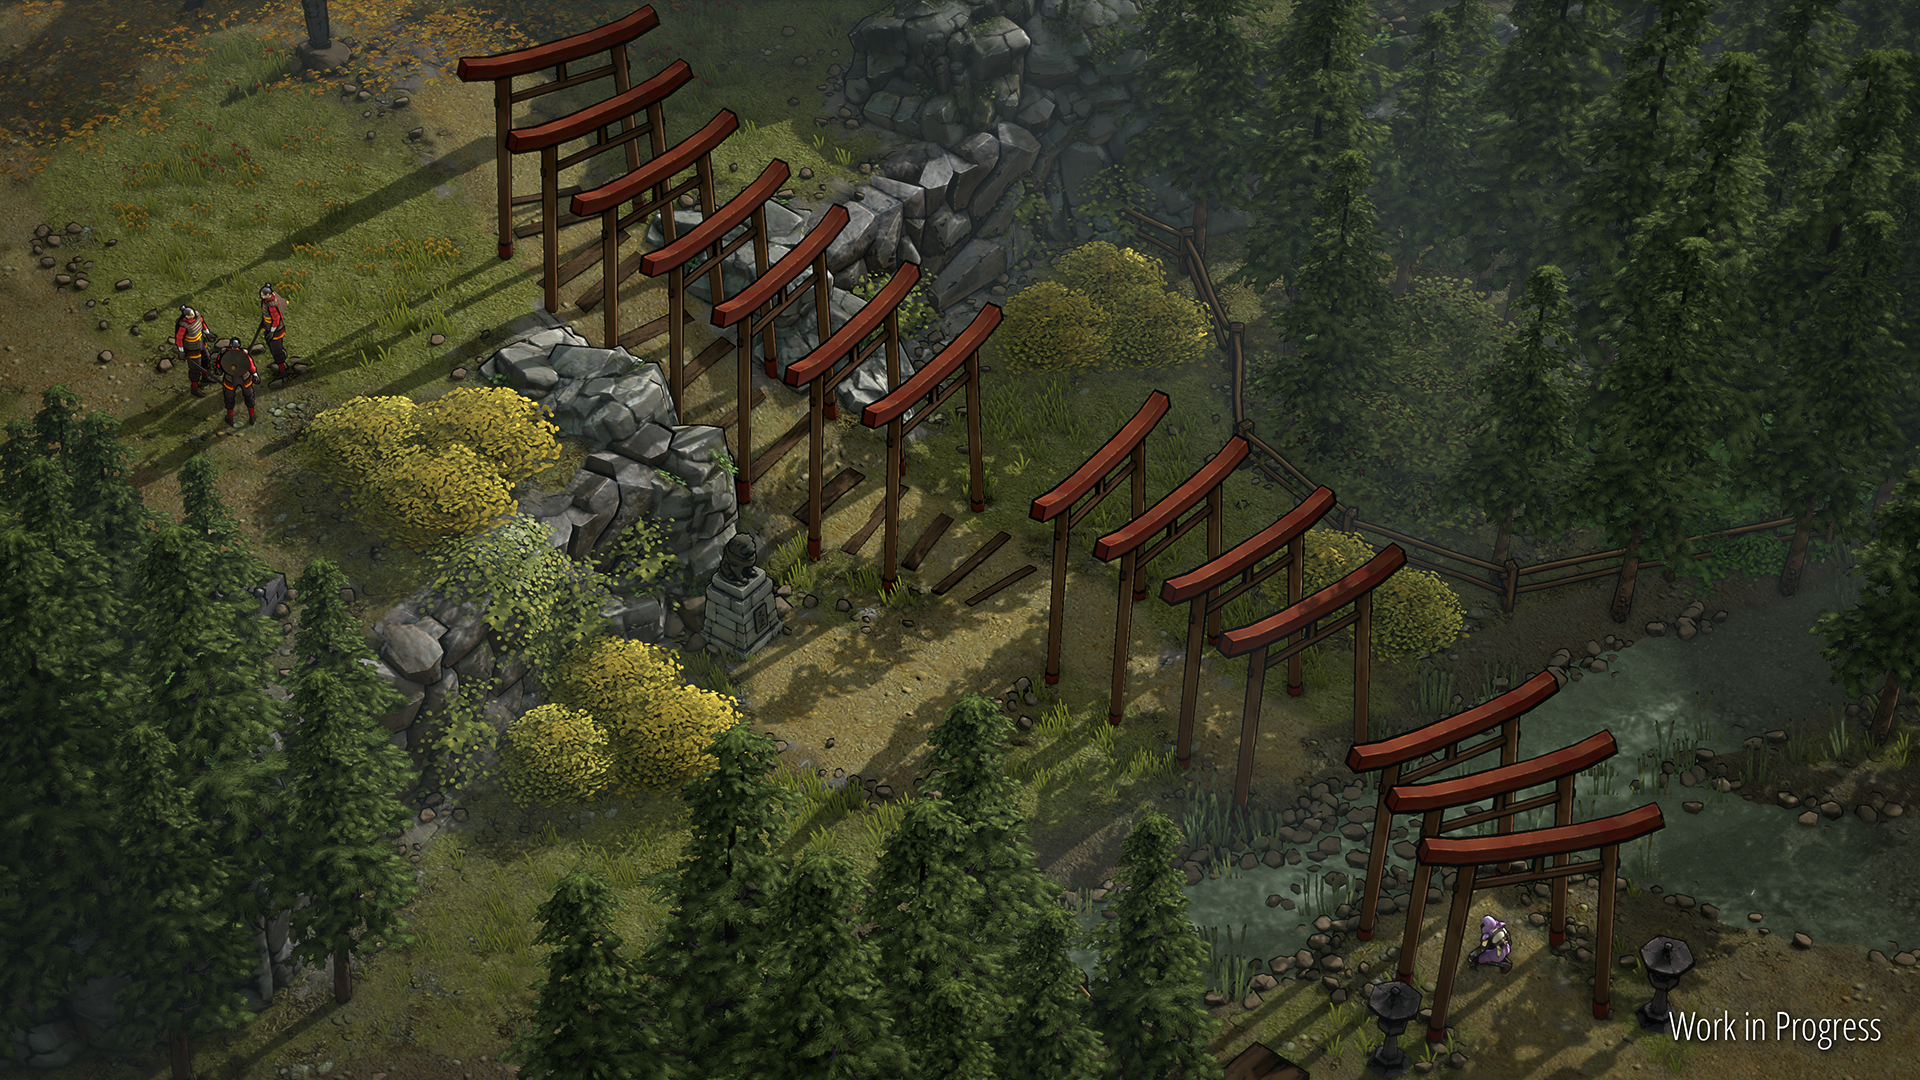 Aiko's Choice is a sneaky new standalone expansion for Shadow Tactics: Blades of the Shogun